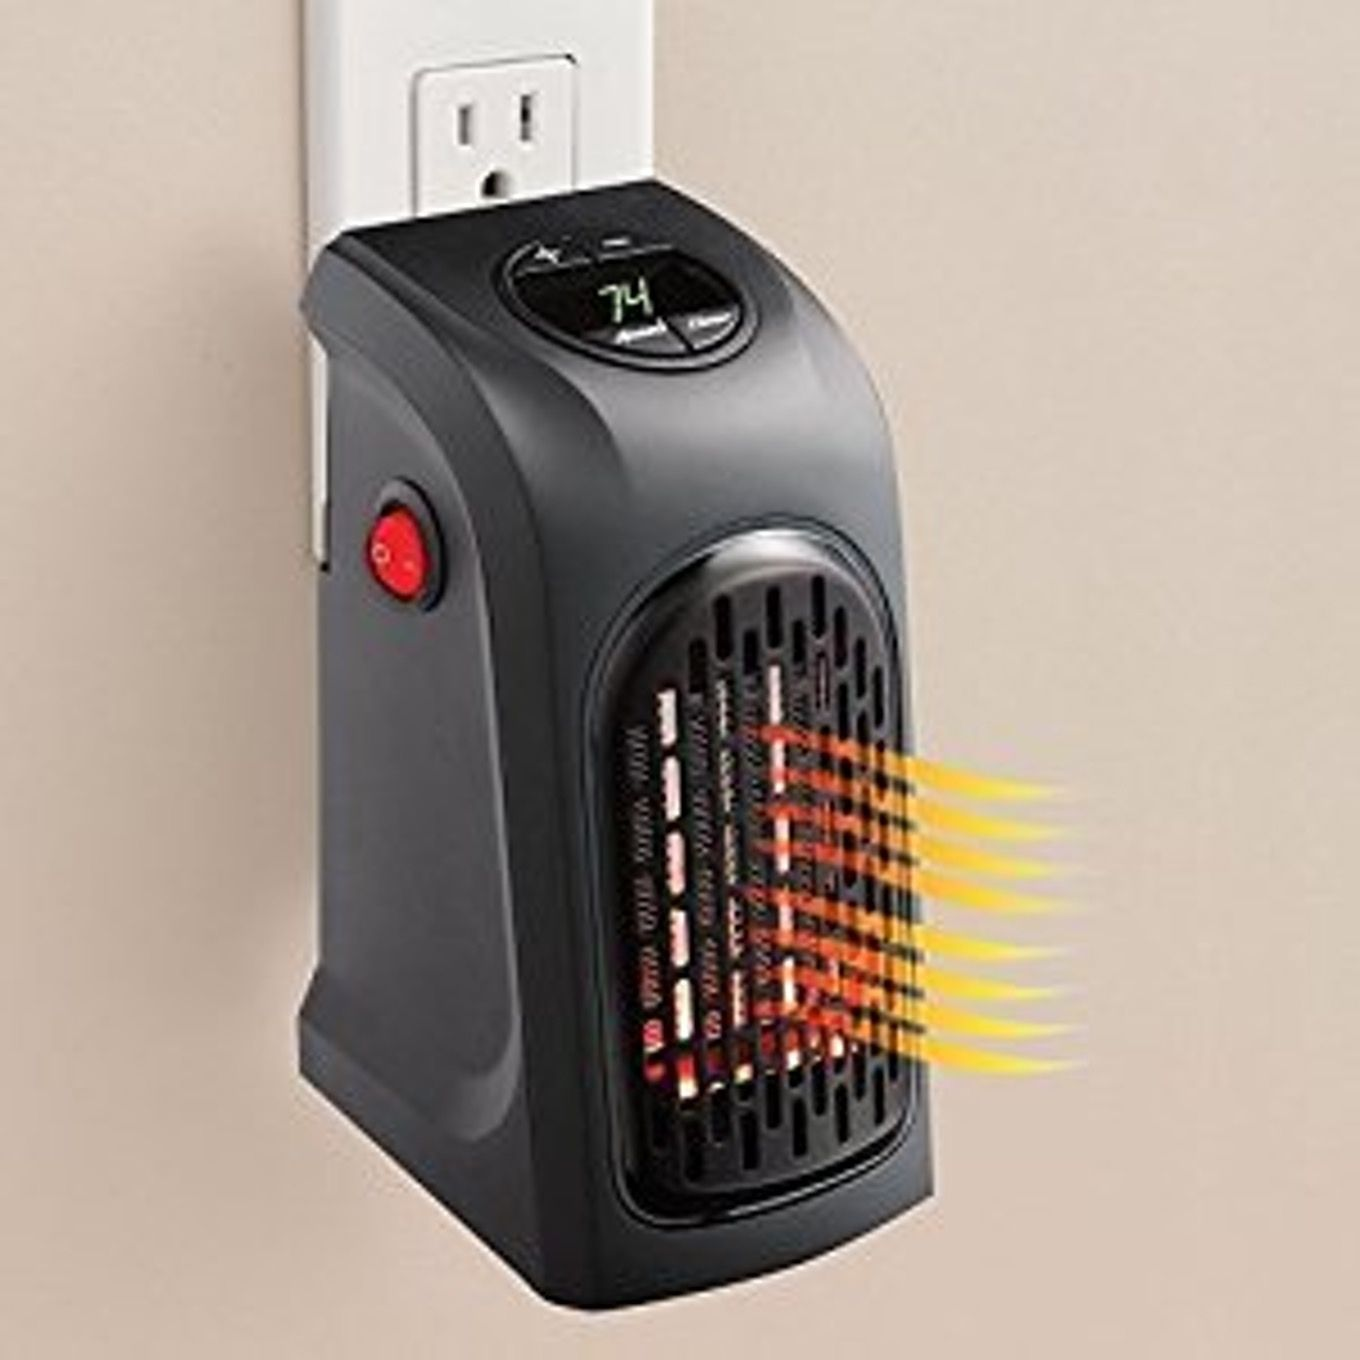 2018 Baby Room Heater - Cool Apartment Furniture Check More At Http://www.itscultured.com/baby-roo… | Small Space Heater, Portable Electric Heaters, Electric Heater